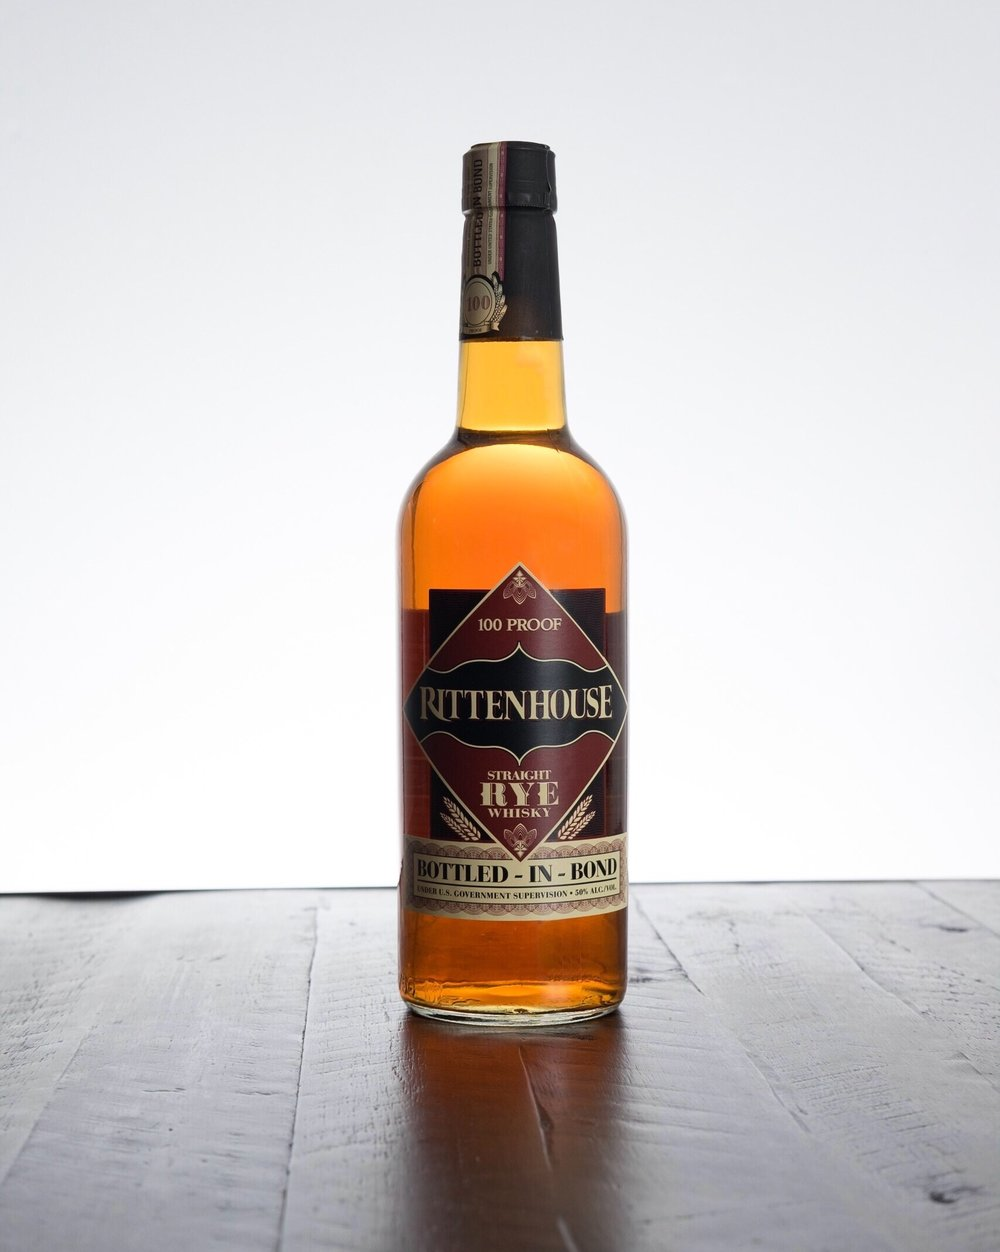 Rittenhouse Rye - AGE: no age statementCOST: $20-$25ABV: 50DEFINING FLAVORS: Spicy & Rich